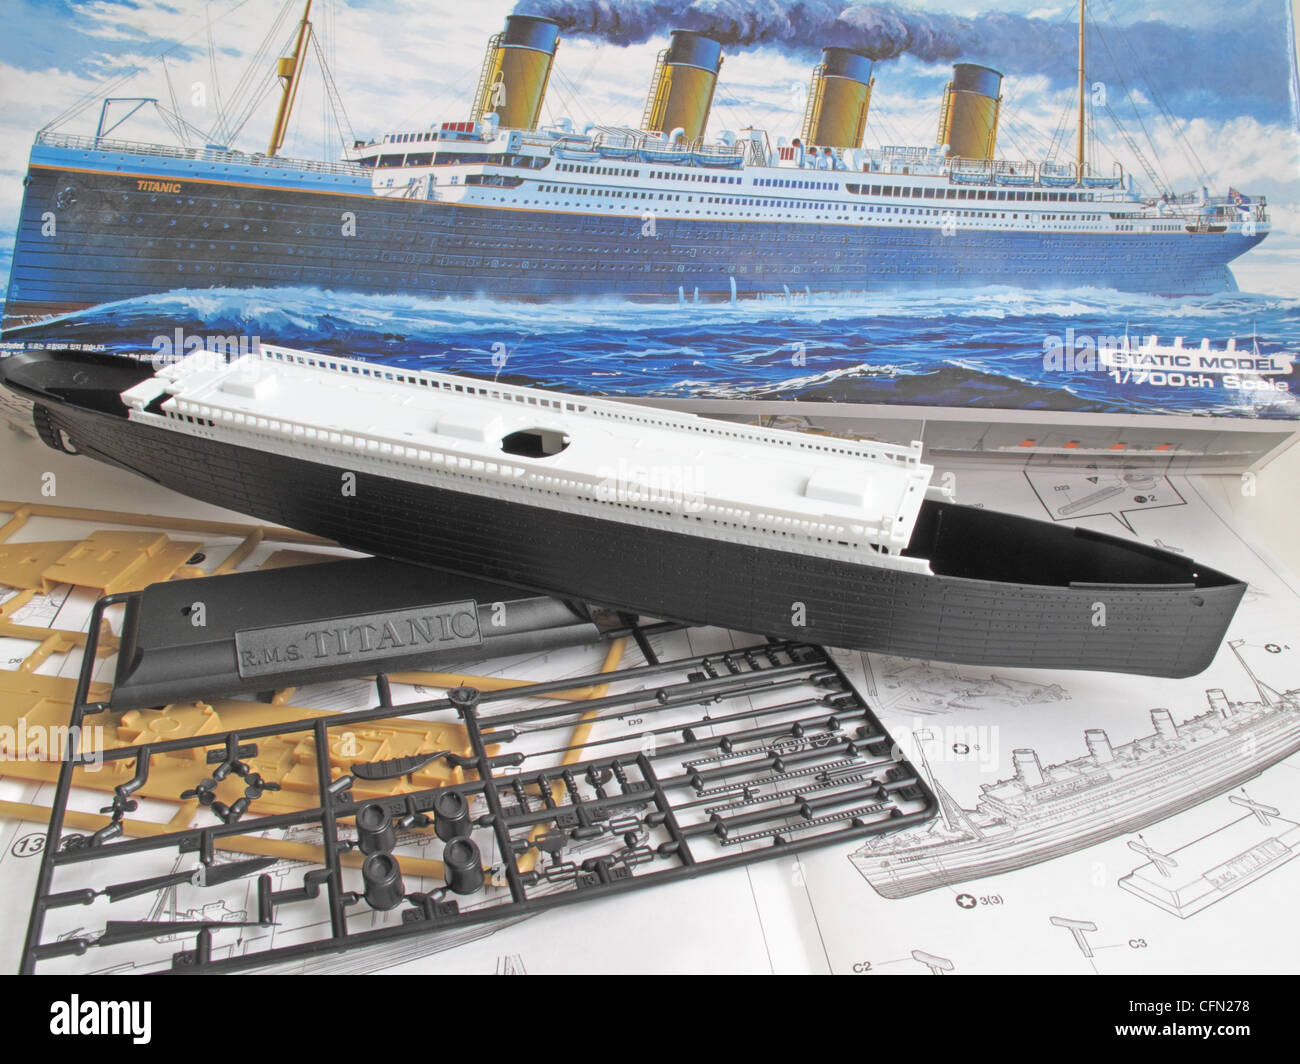 titanic boat diagram fender lace sensor wiring a kit model and the unassembled parts of ship